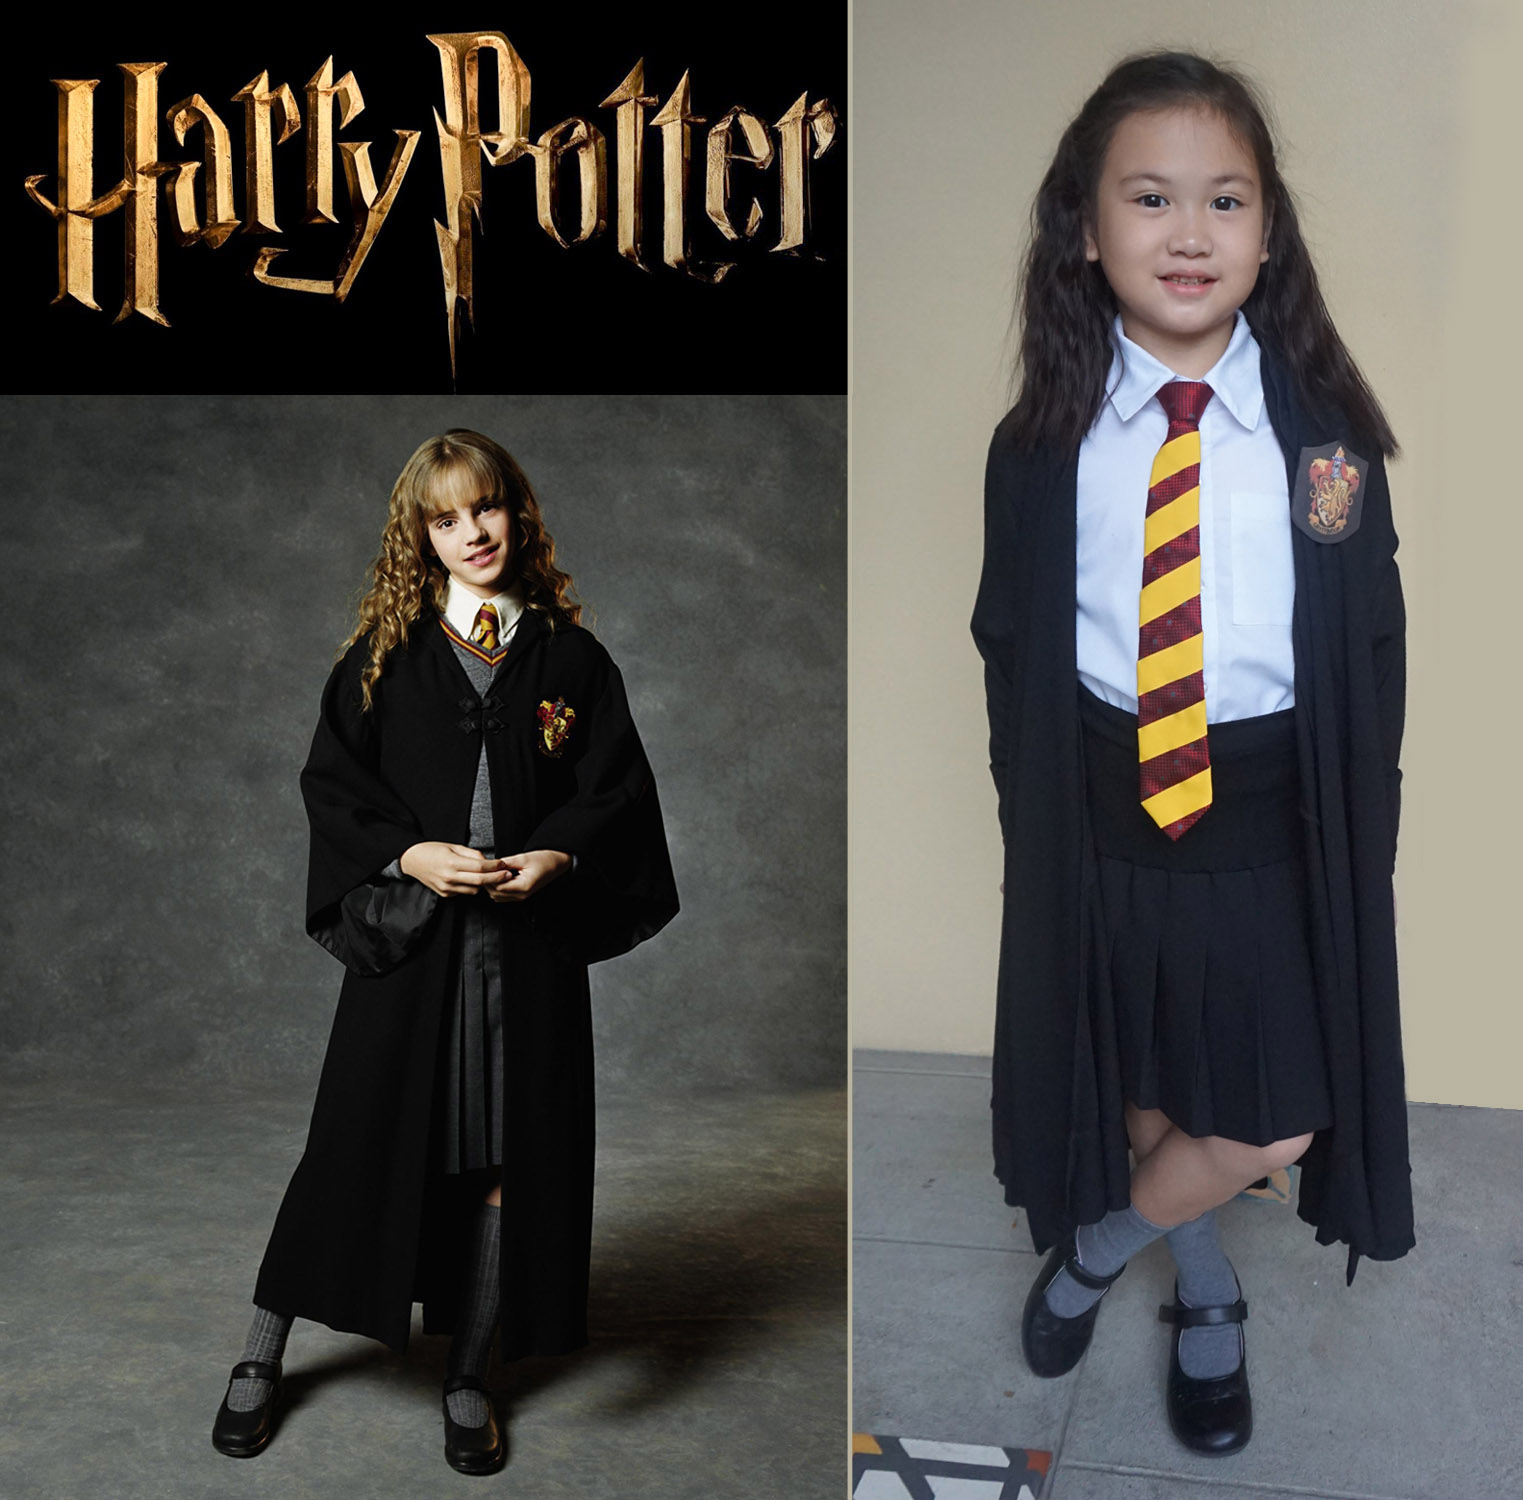 Book Cover School Uniforms : Mrsmommyholic diy hermione granger costume